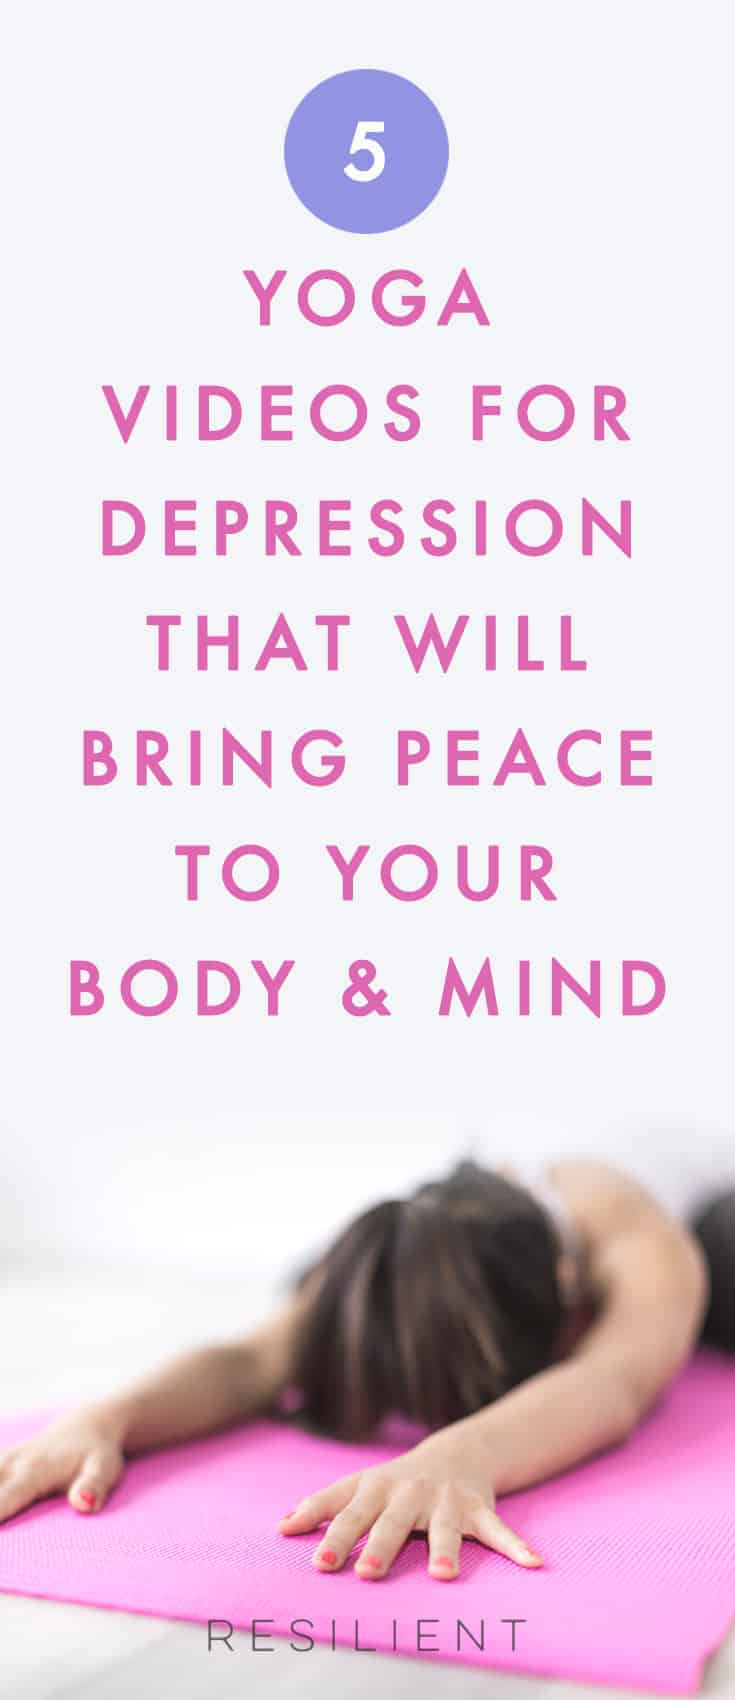 When you're depressed, it's important to get moving and keep your energy up but that's the last thing you want to do.  So if you're depressed, sometimes yoga is a gentle way to ease into movement that can help ease depression but doesn't take a ridiculous amount of energy to get started with.  Try these 5 yoga videos for depression to see if they help with your stress and depression.